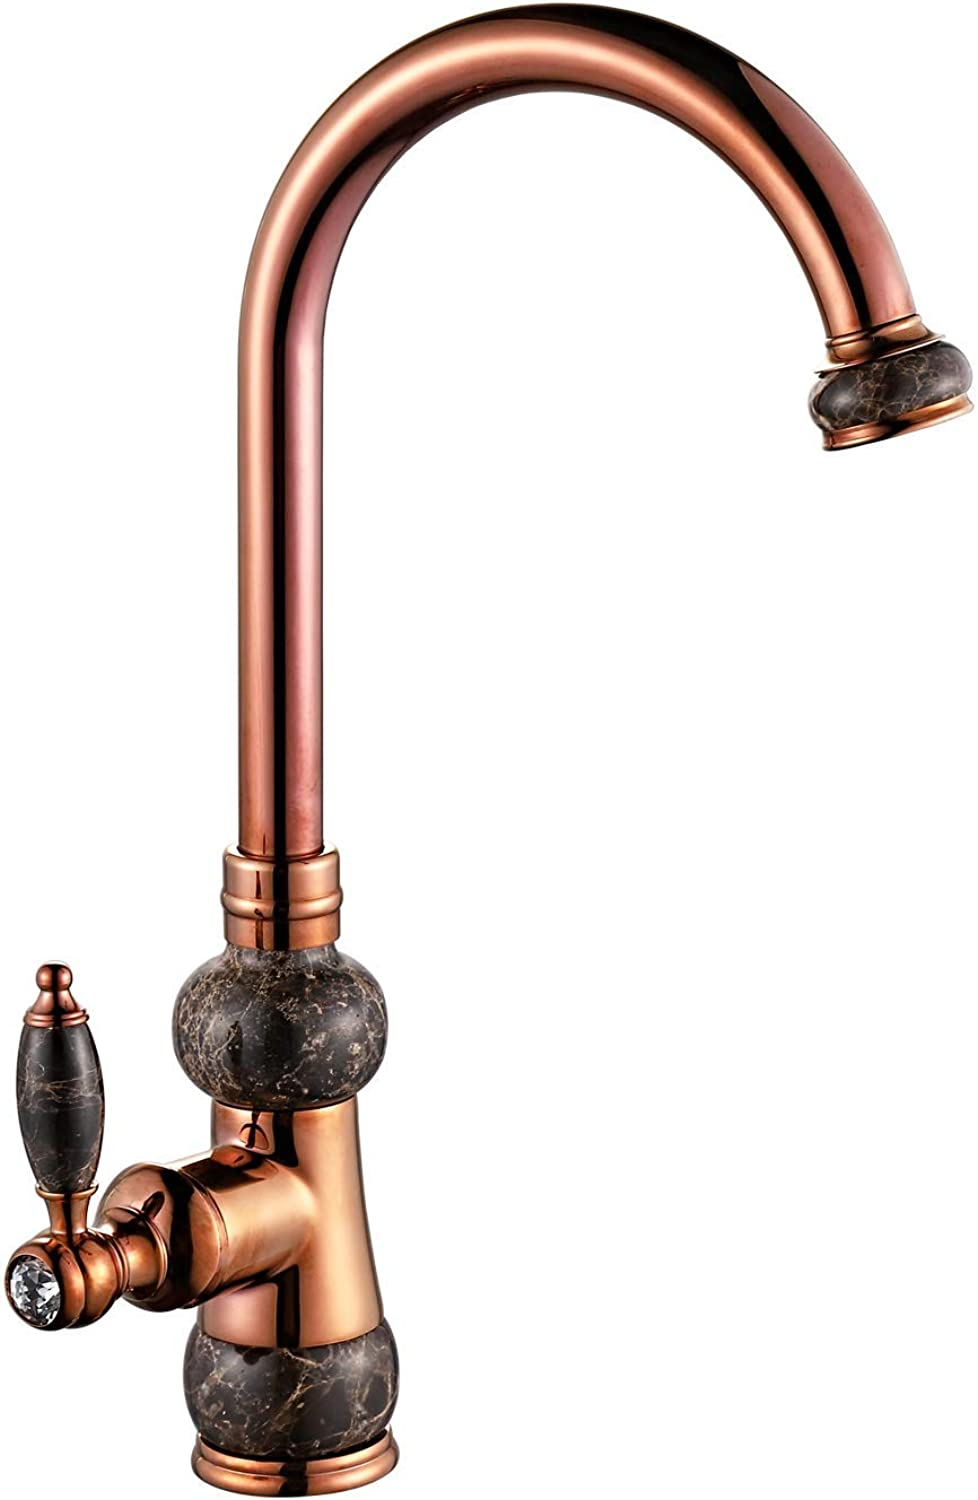 Bathroom Kitchen Sink Faucet,pink gold All Brass Brushed Plating No Lead Creative Retro Faucet Retro Style 360°Swivel Spout Hot and Cold,pinkgoldink